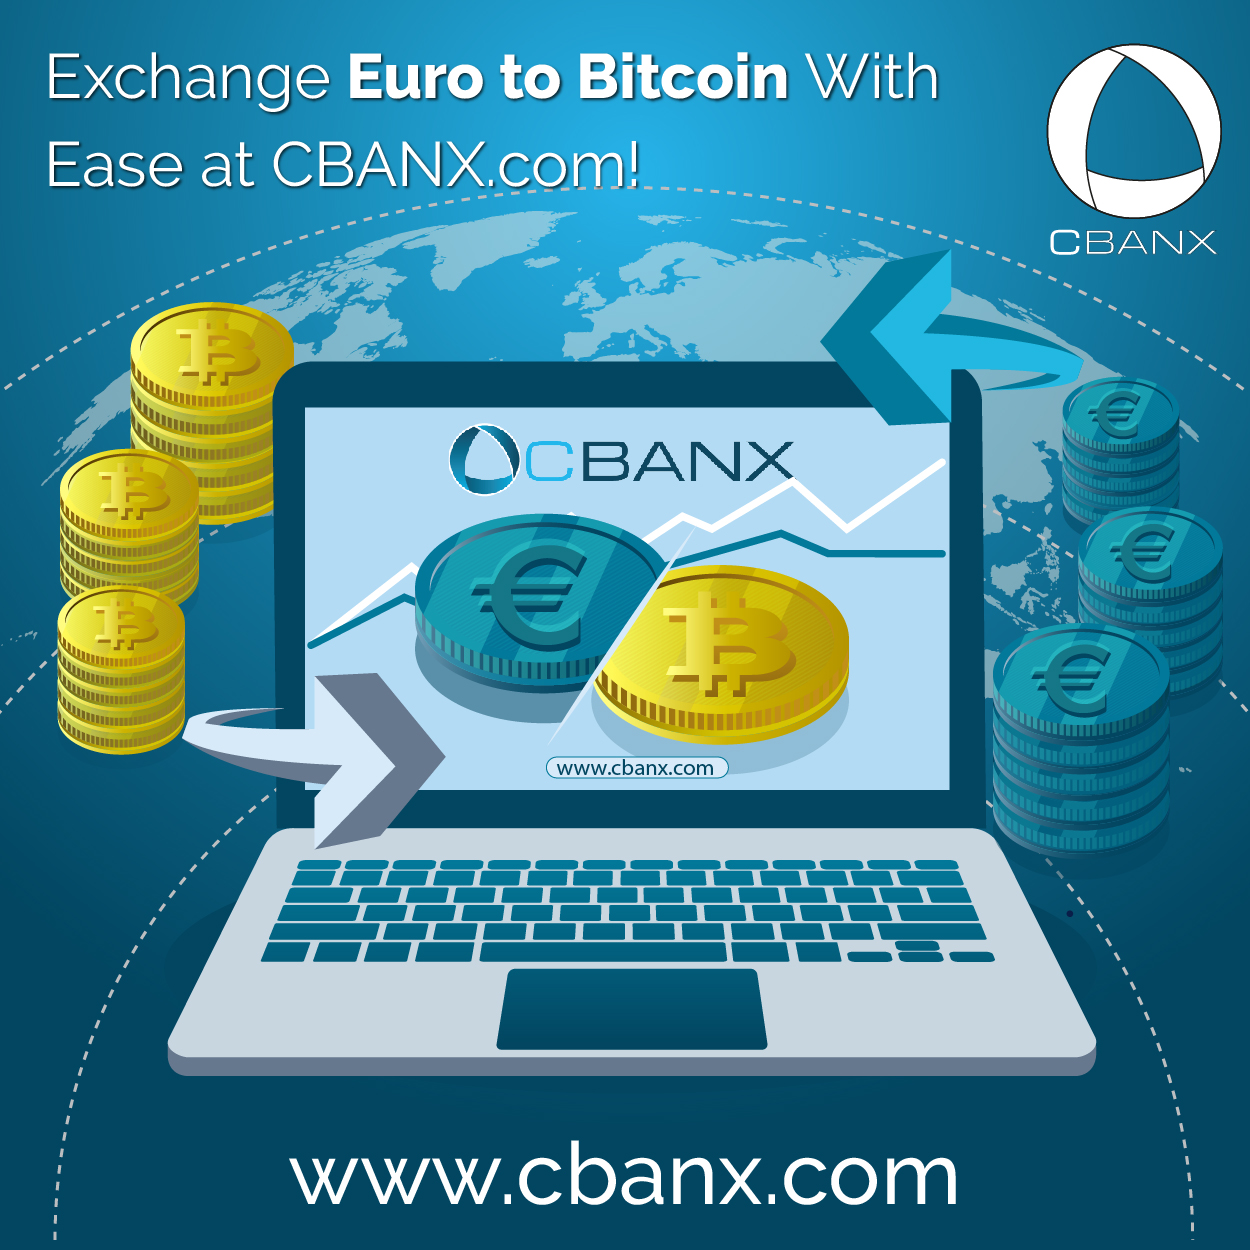 Exchange Euro to Bitcoin With Ease at CBANX.com!